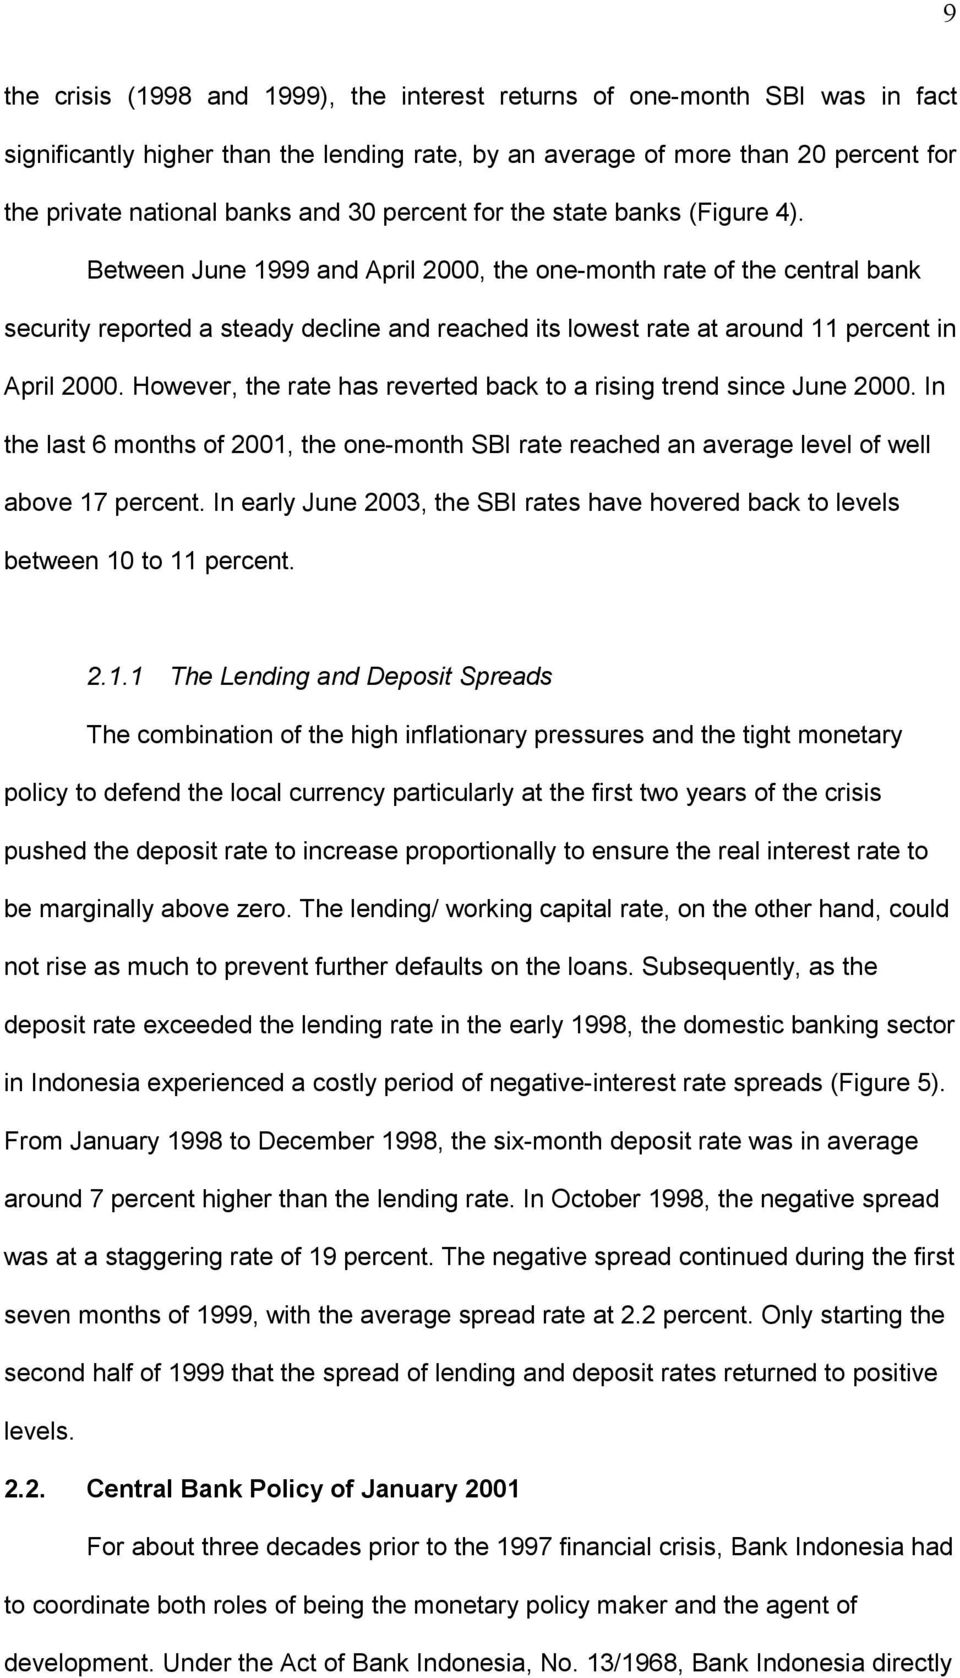 However, he rae ha revered back o a riing rend ince June 2000. In he la 6 monh of 2001, he one-monh SBI rae reached an average level of well above 17 percen.